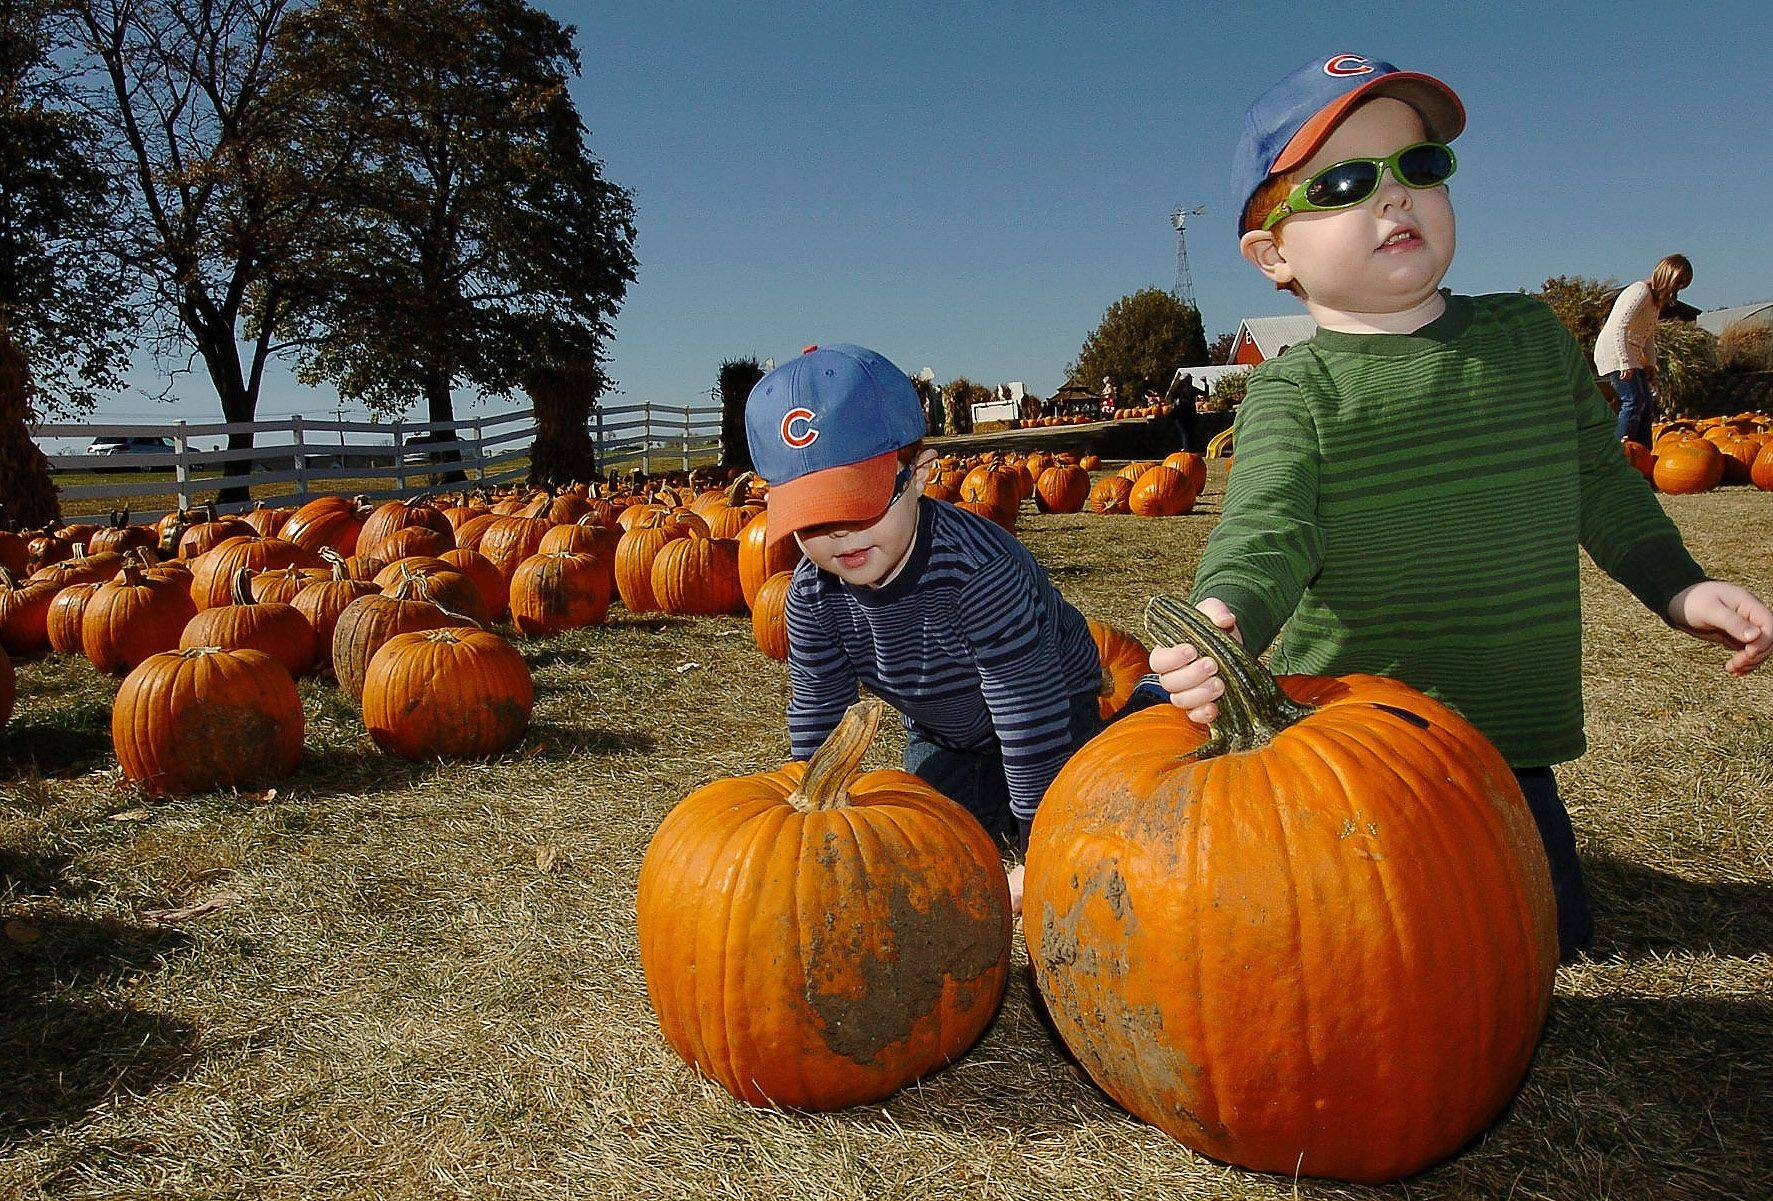 Three-year-old twins Joey, left, and Tommy Johnston of Palatine help mom pick out a pumpkin or two at Goebberts Pumpkin Farm in South Barrington.